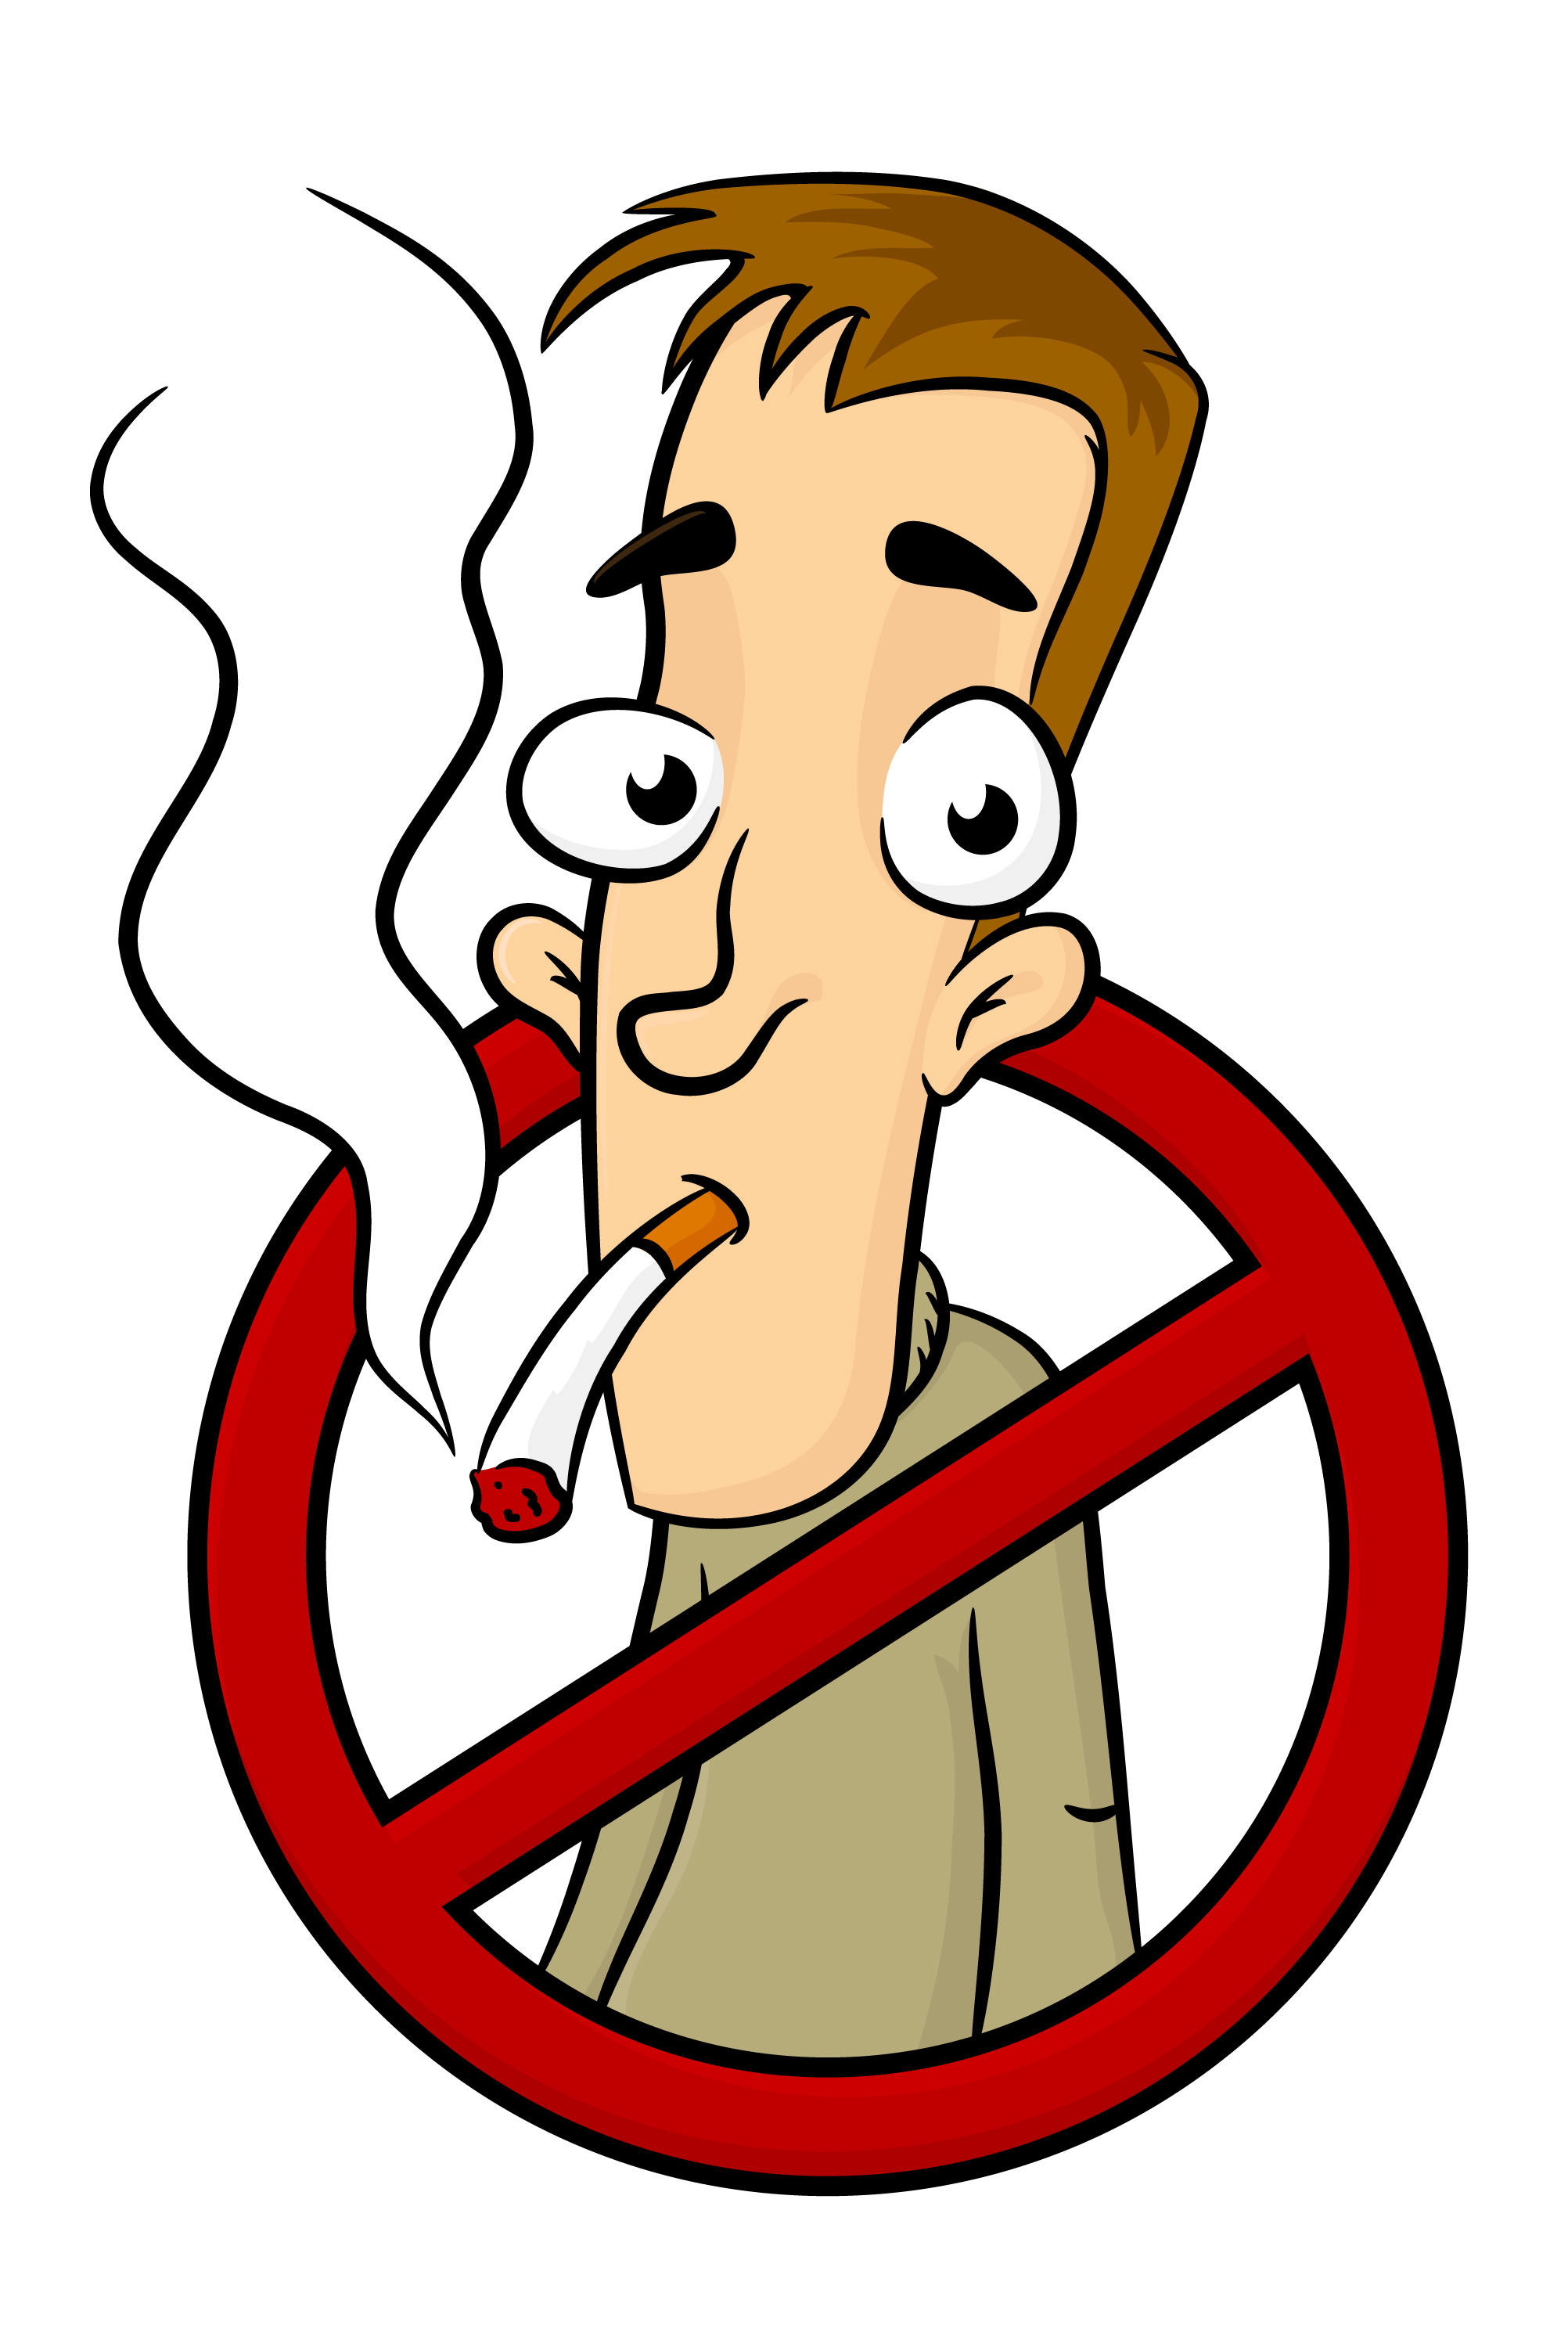 png transparent stock Smoking clipart. Free download clip art.